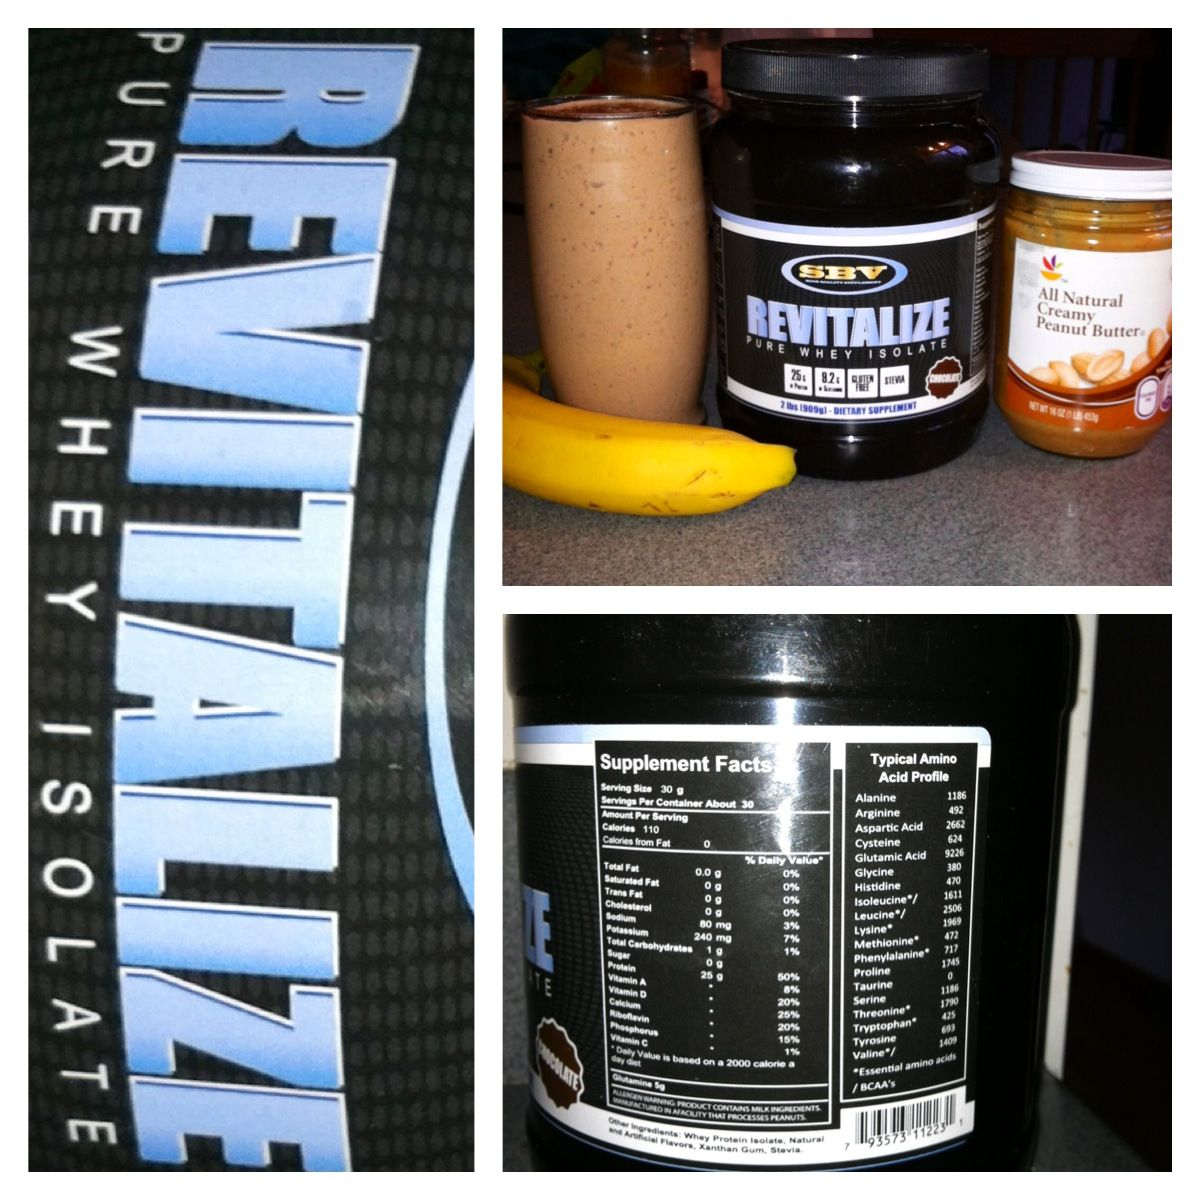 Delicious protein shake made with revitalize protein! Go to www.sbvfitness.com highest quality protein out there with 25g protein, 1g carb, 110 cal. See results faster!